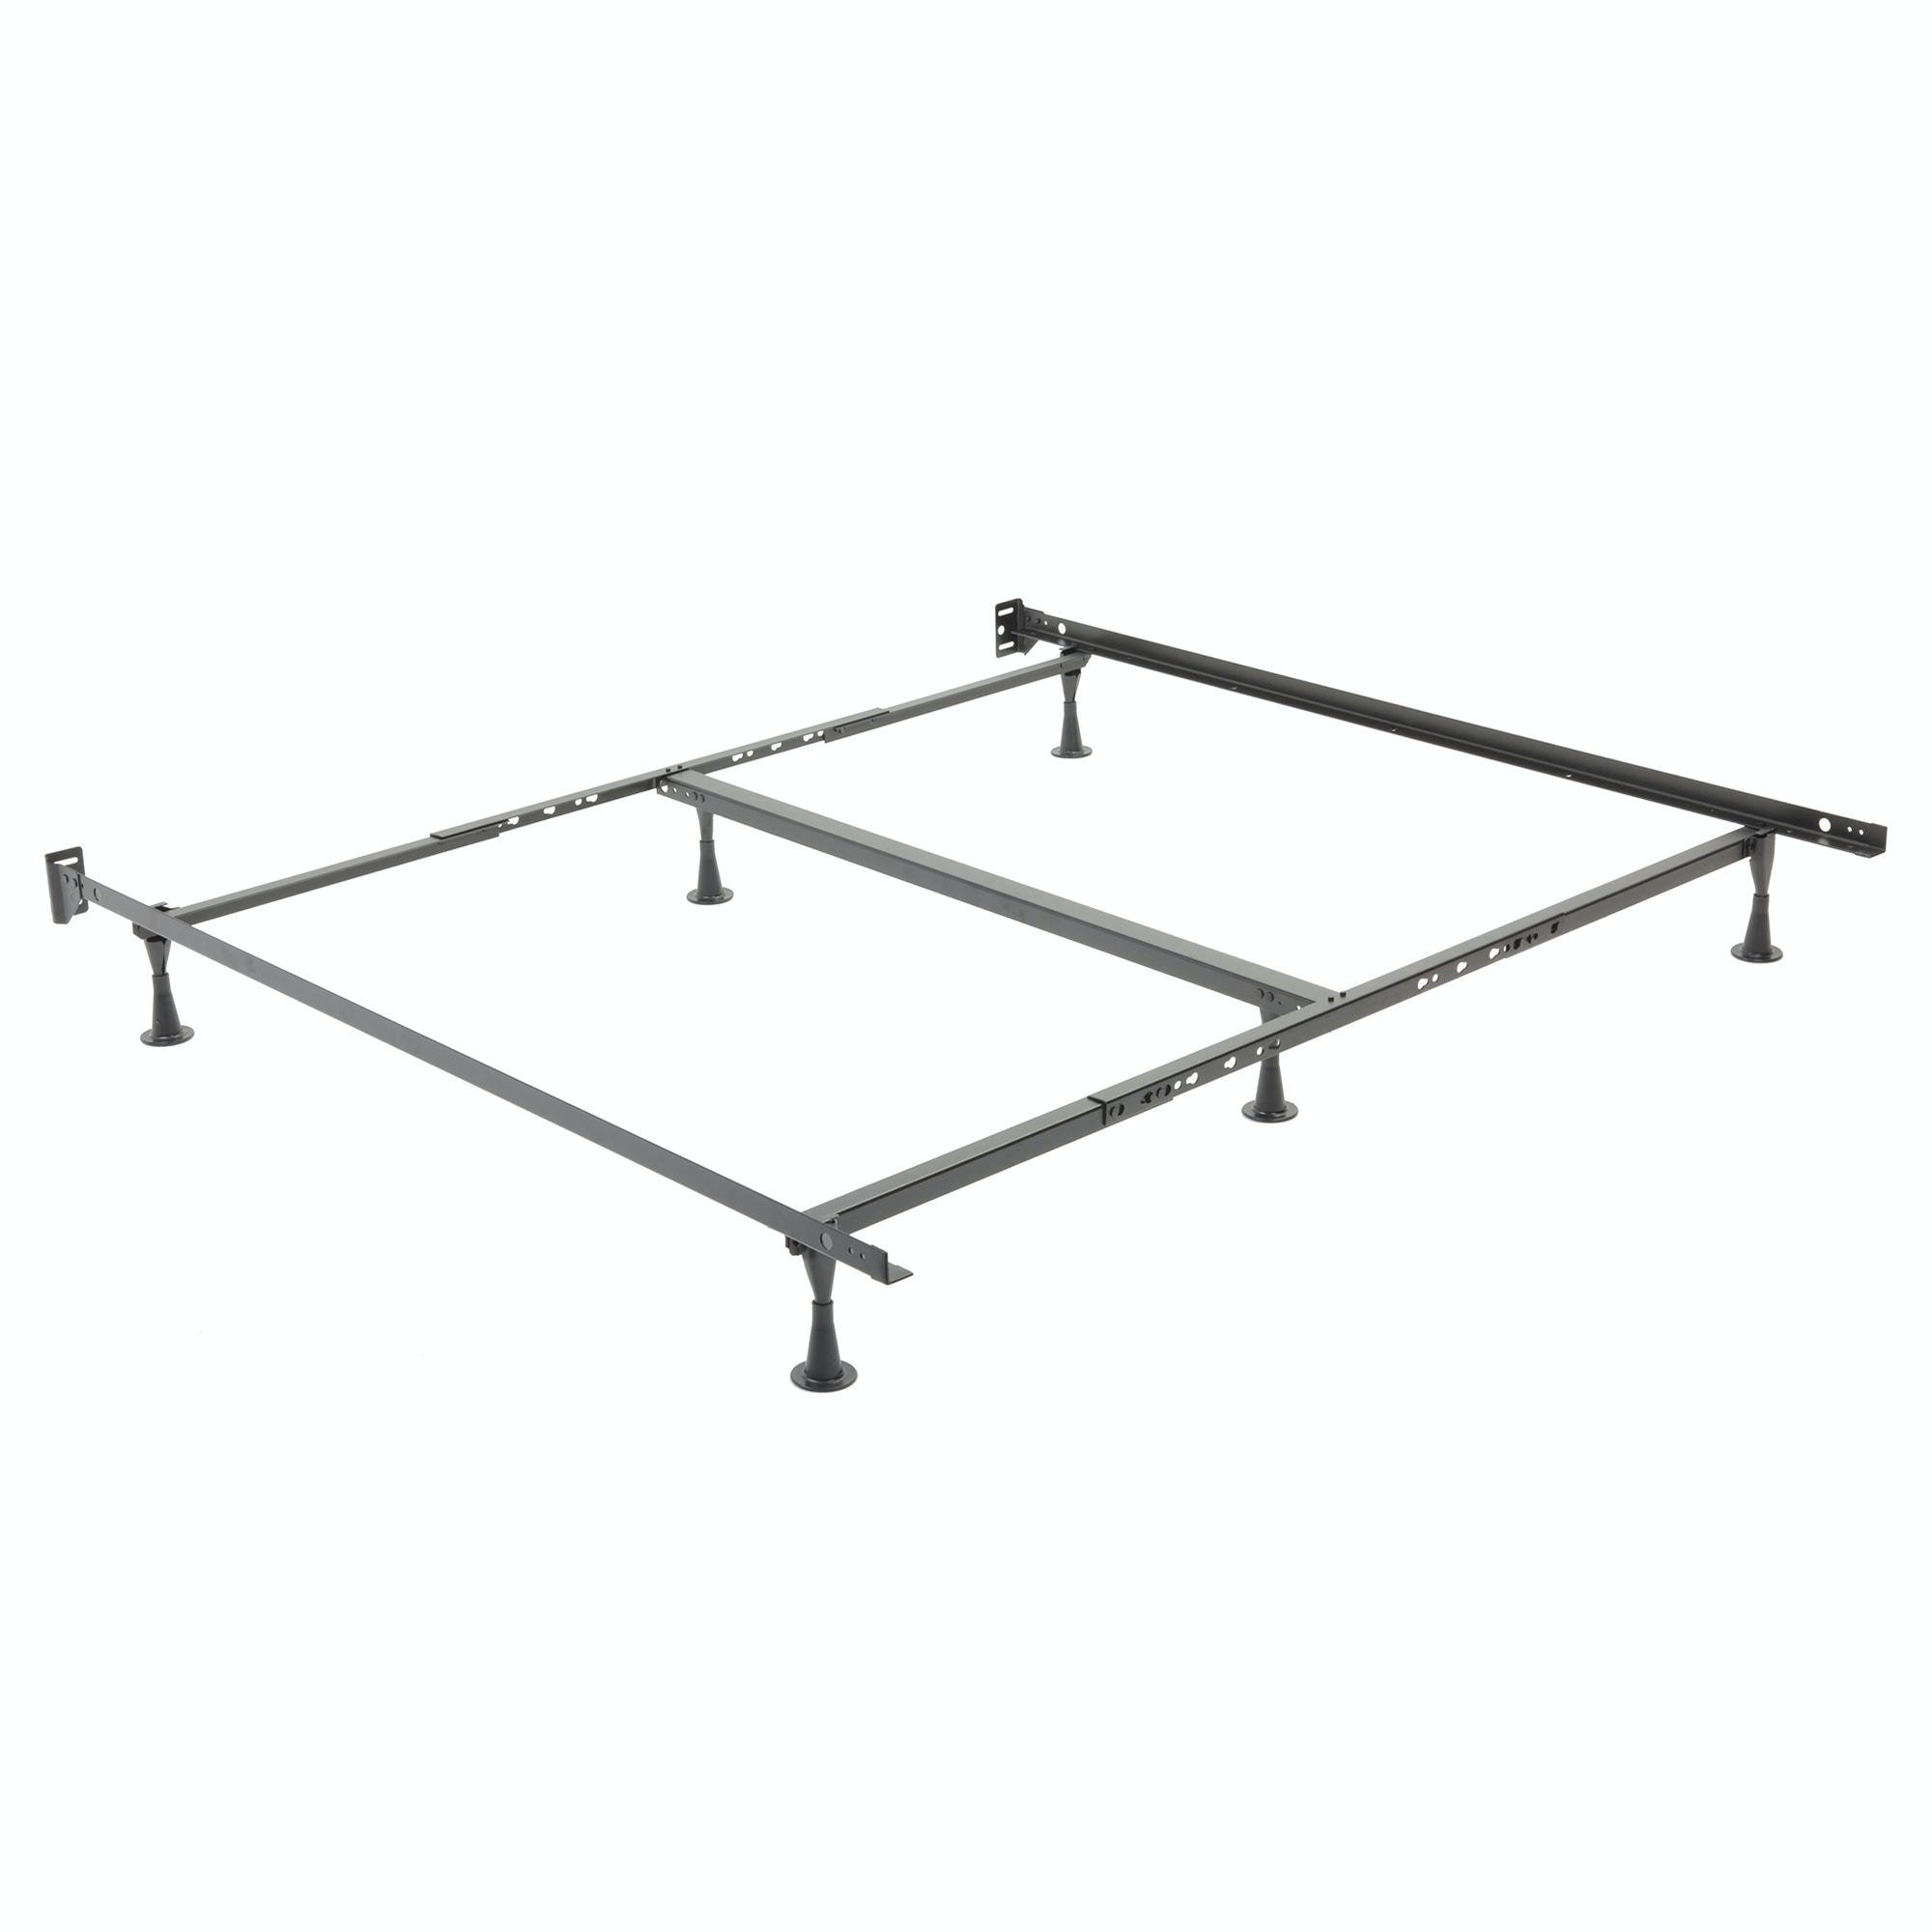 Fashion Bed Group Mattresses Restmore Adjustable Center Support Bed